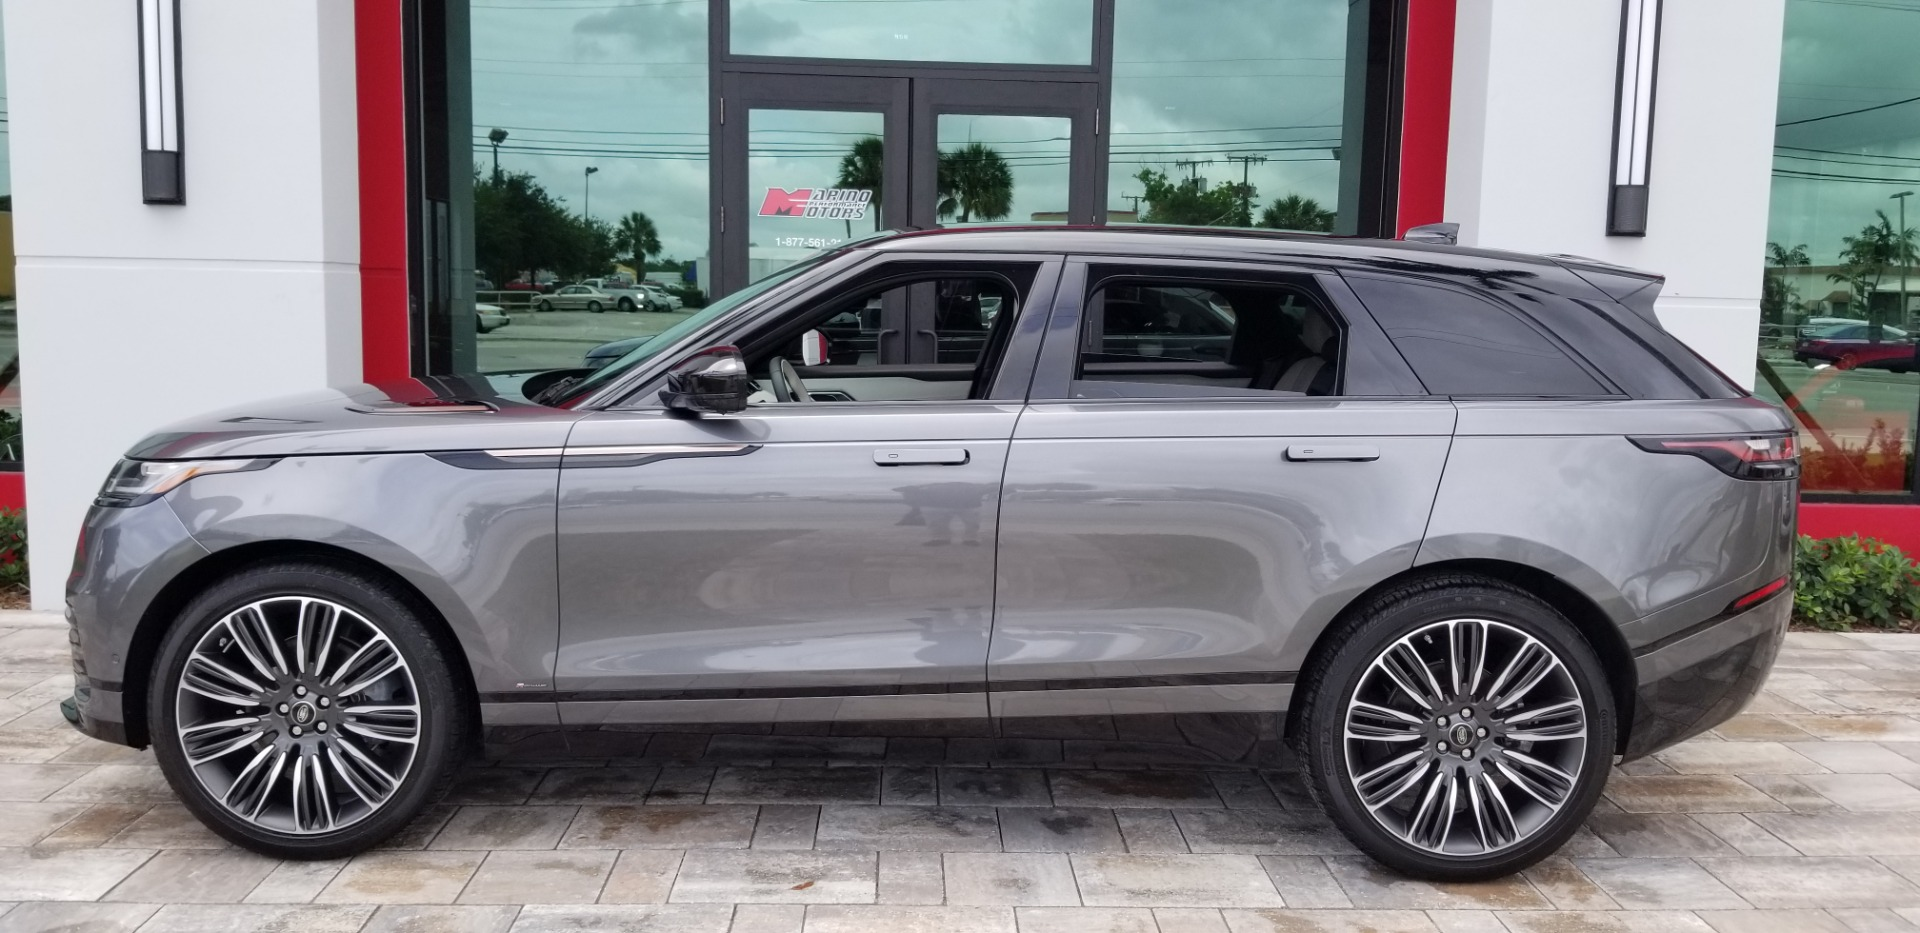 used 2018 land rover range rover velar first edition for sale 79 900 marino performance. Black Bedroom Furniture Sets. Home Design Ideas